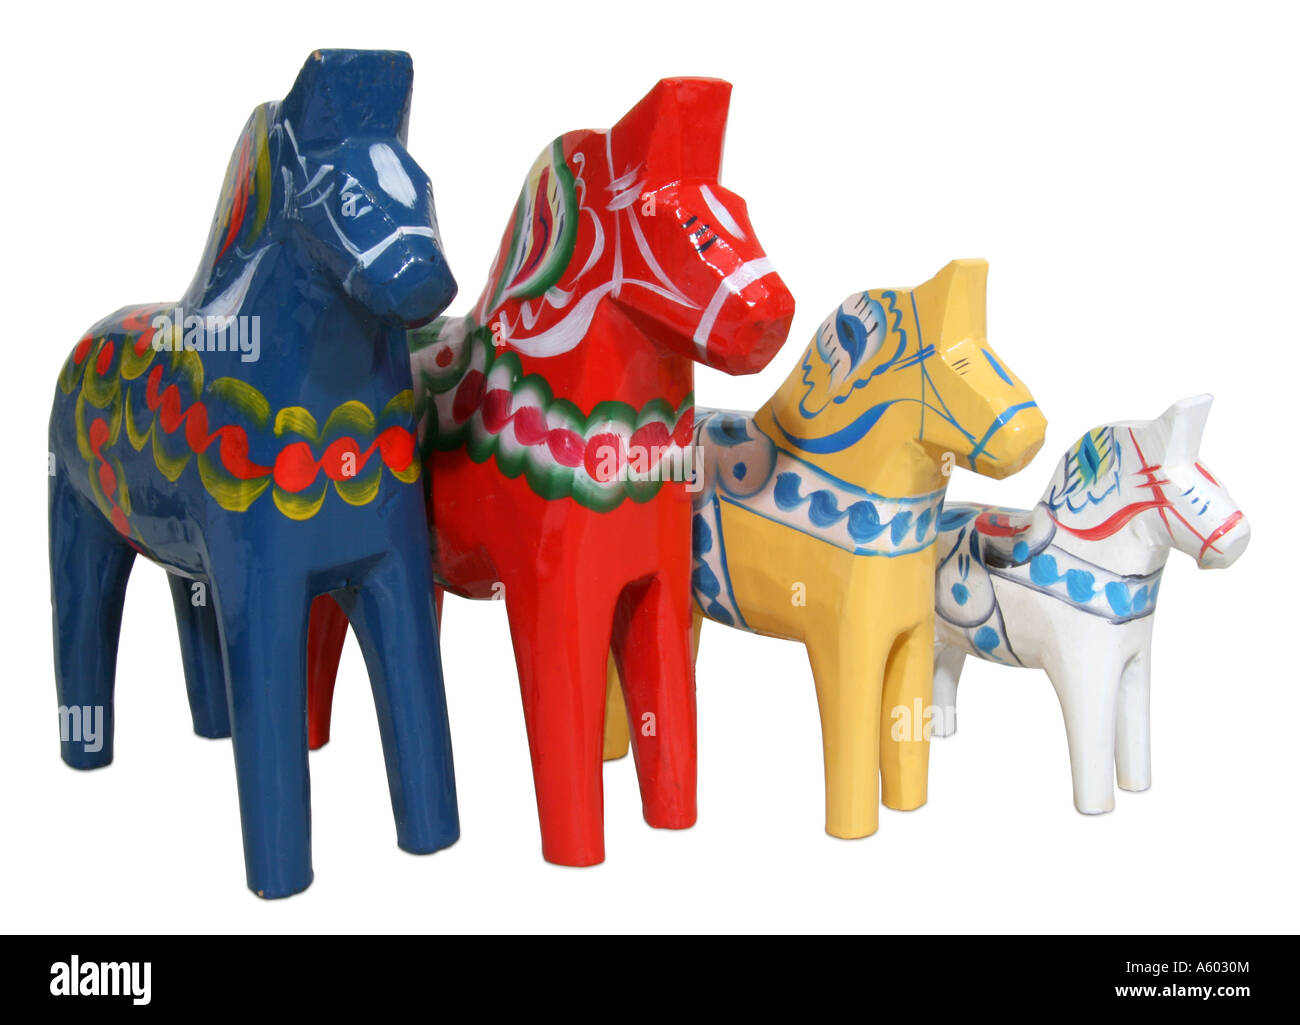 A herd of Dala horses blue orange yellow and white largest to smallest - Stock Image